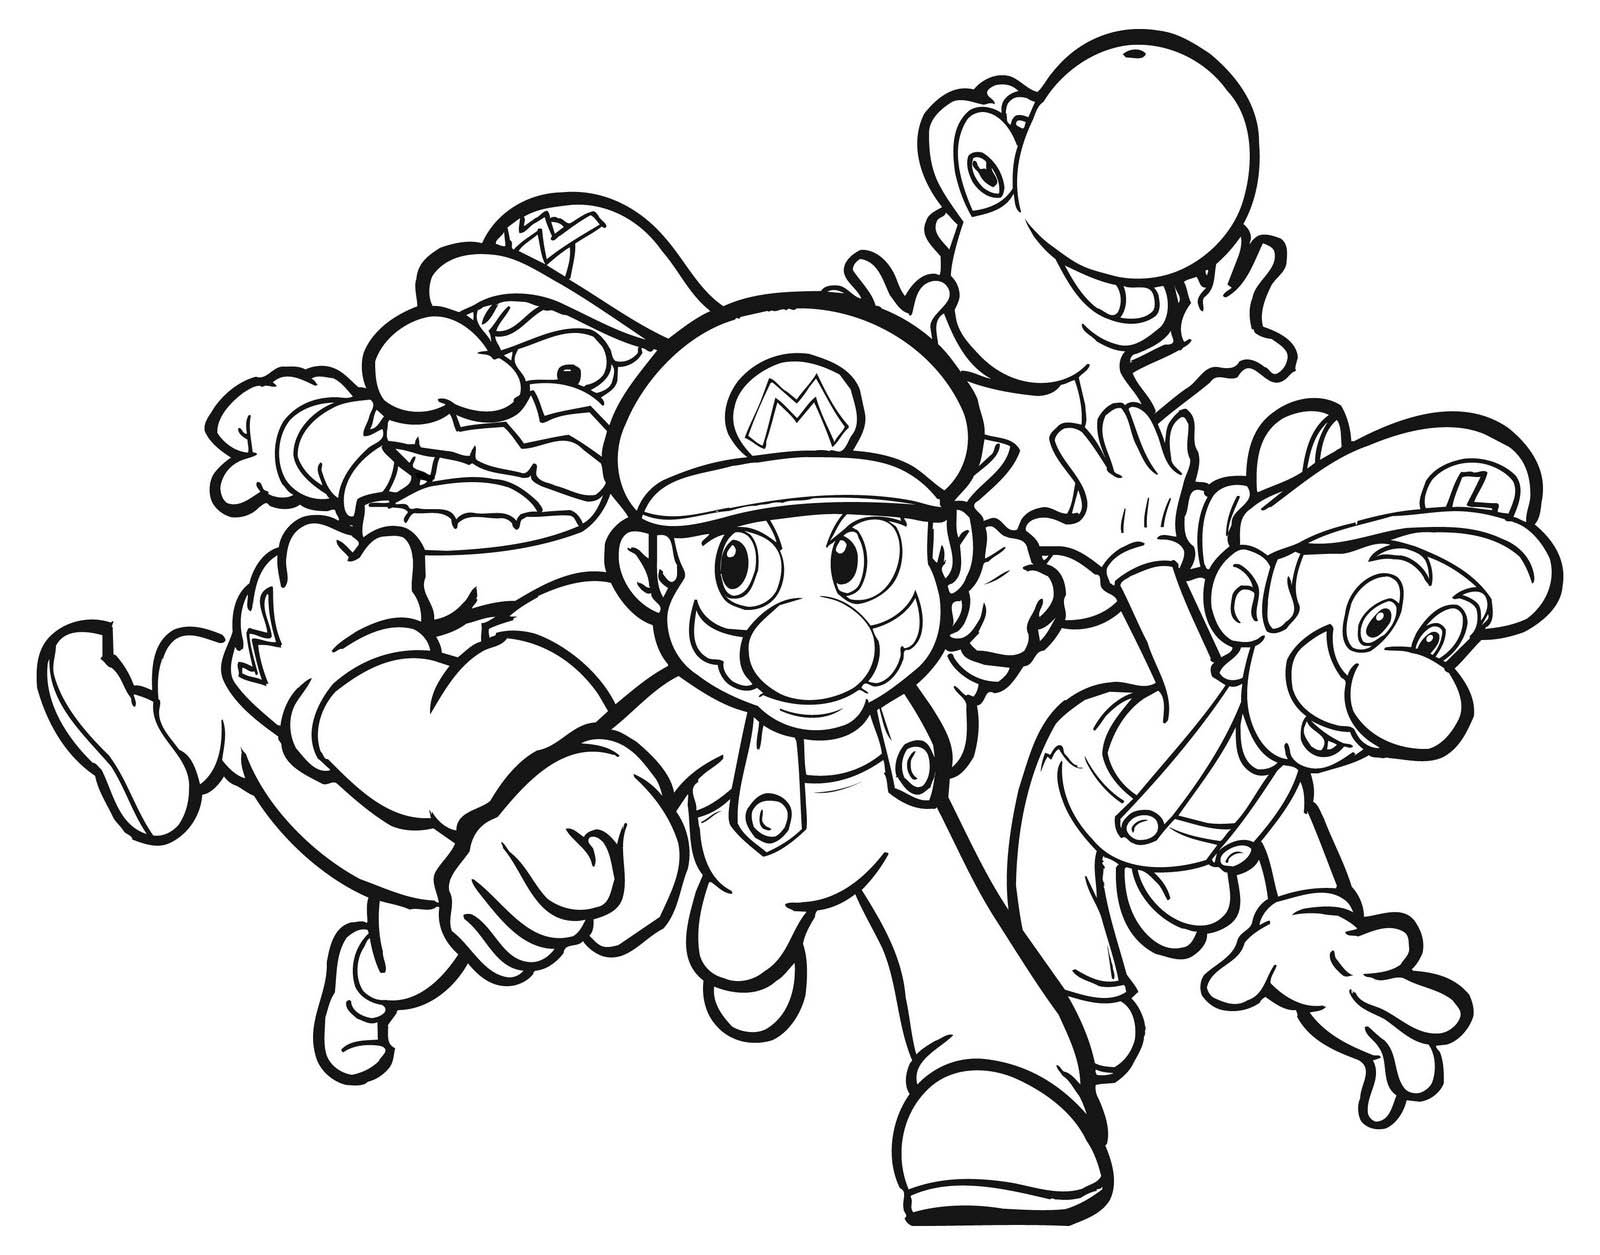 free mario coloring pages - mario coloring pages